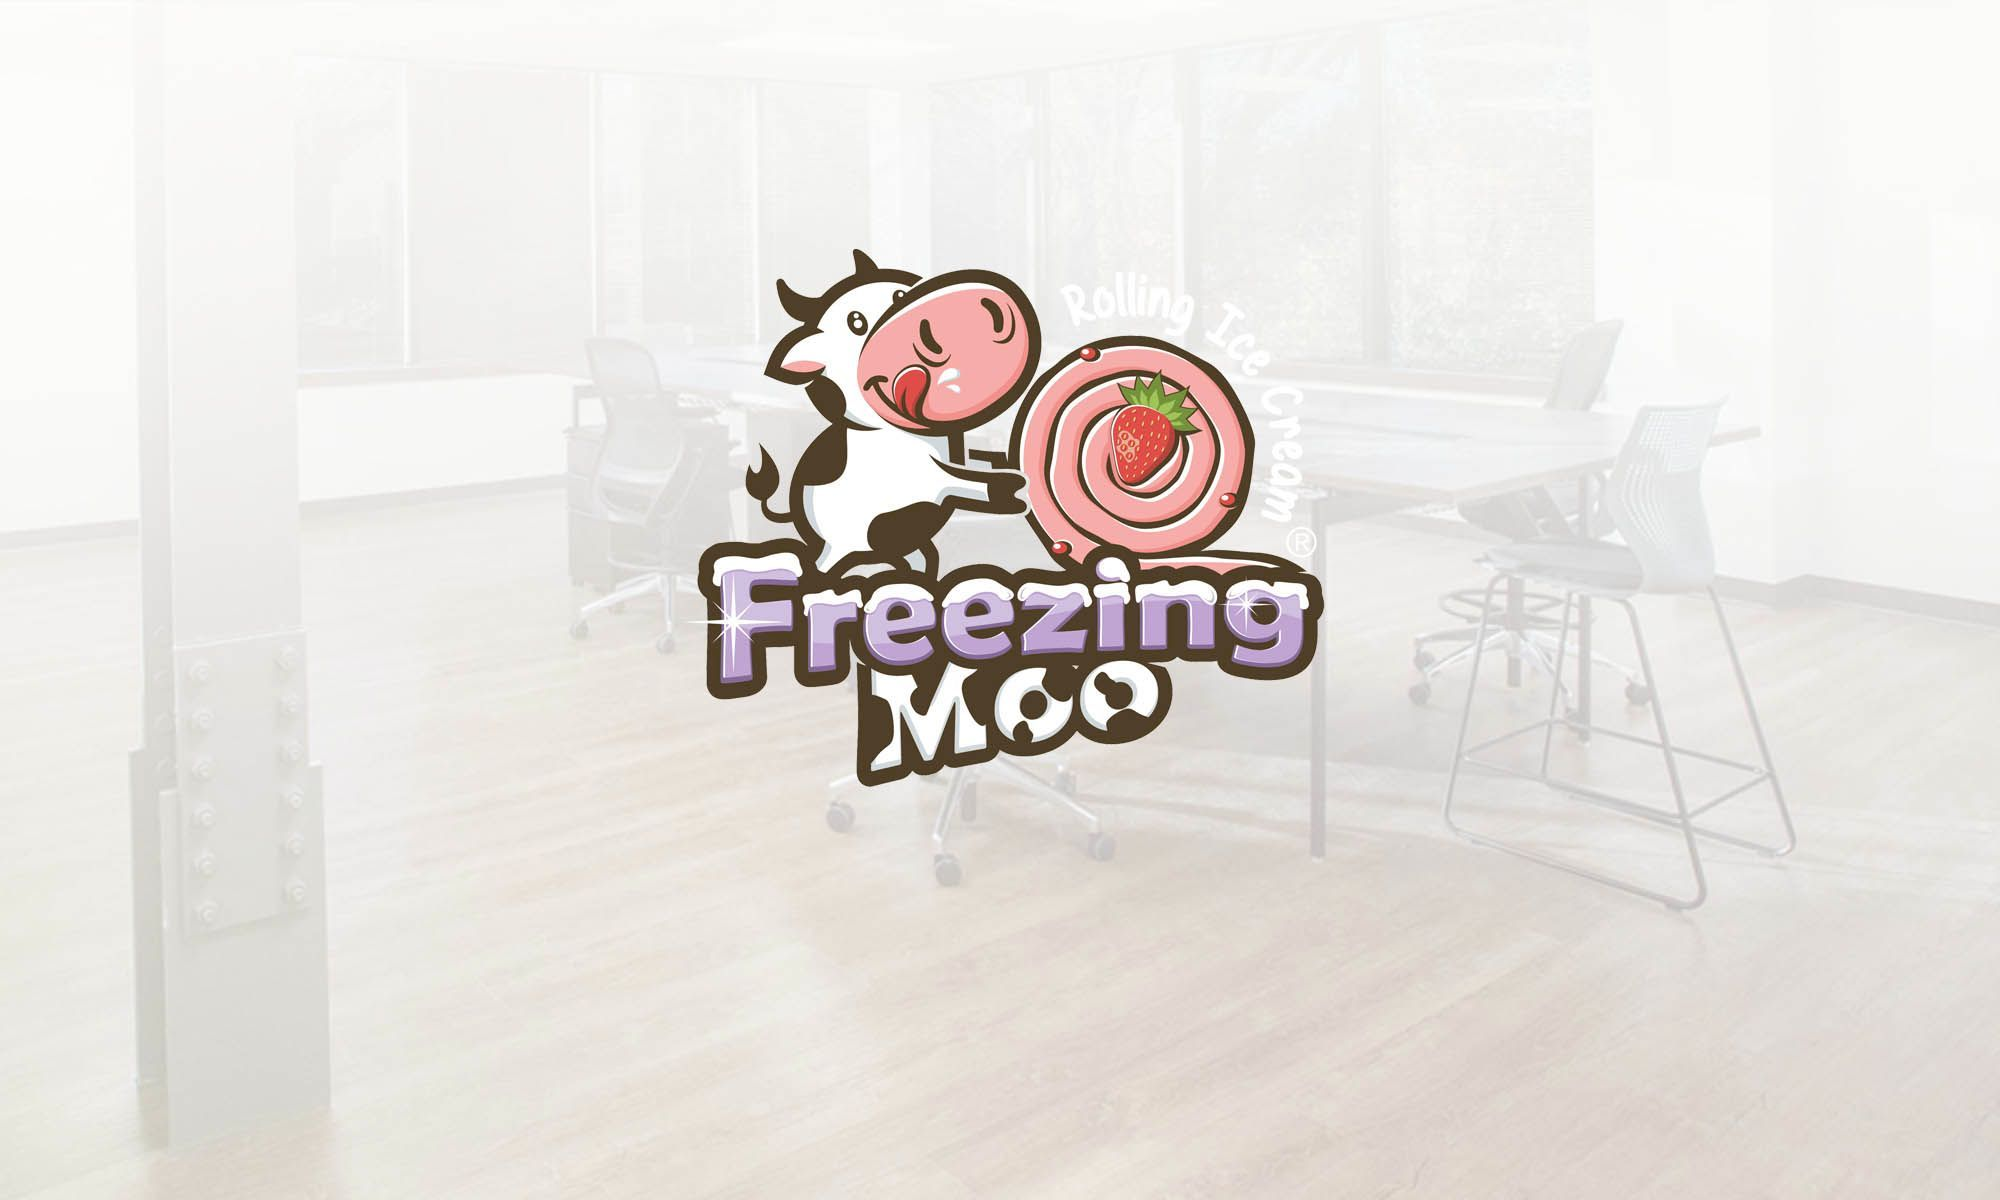 Edison Spaces Welcomes Freezing Moo to its Johnson County Offices